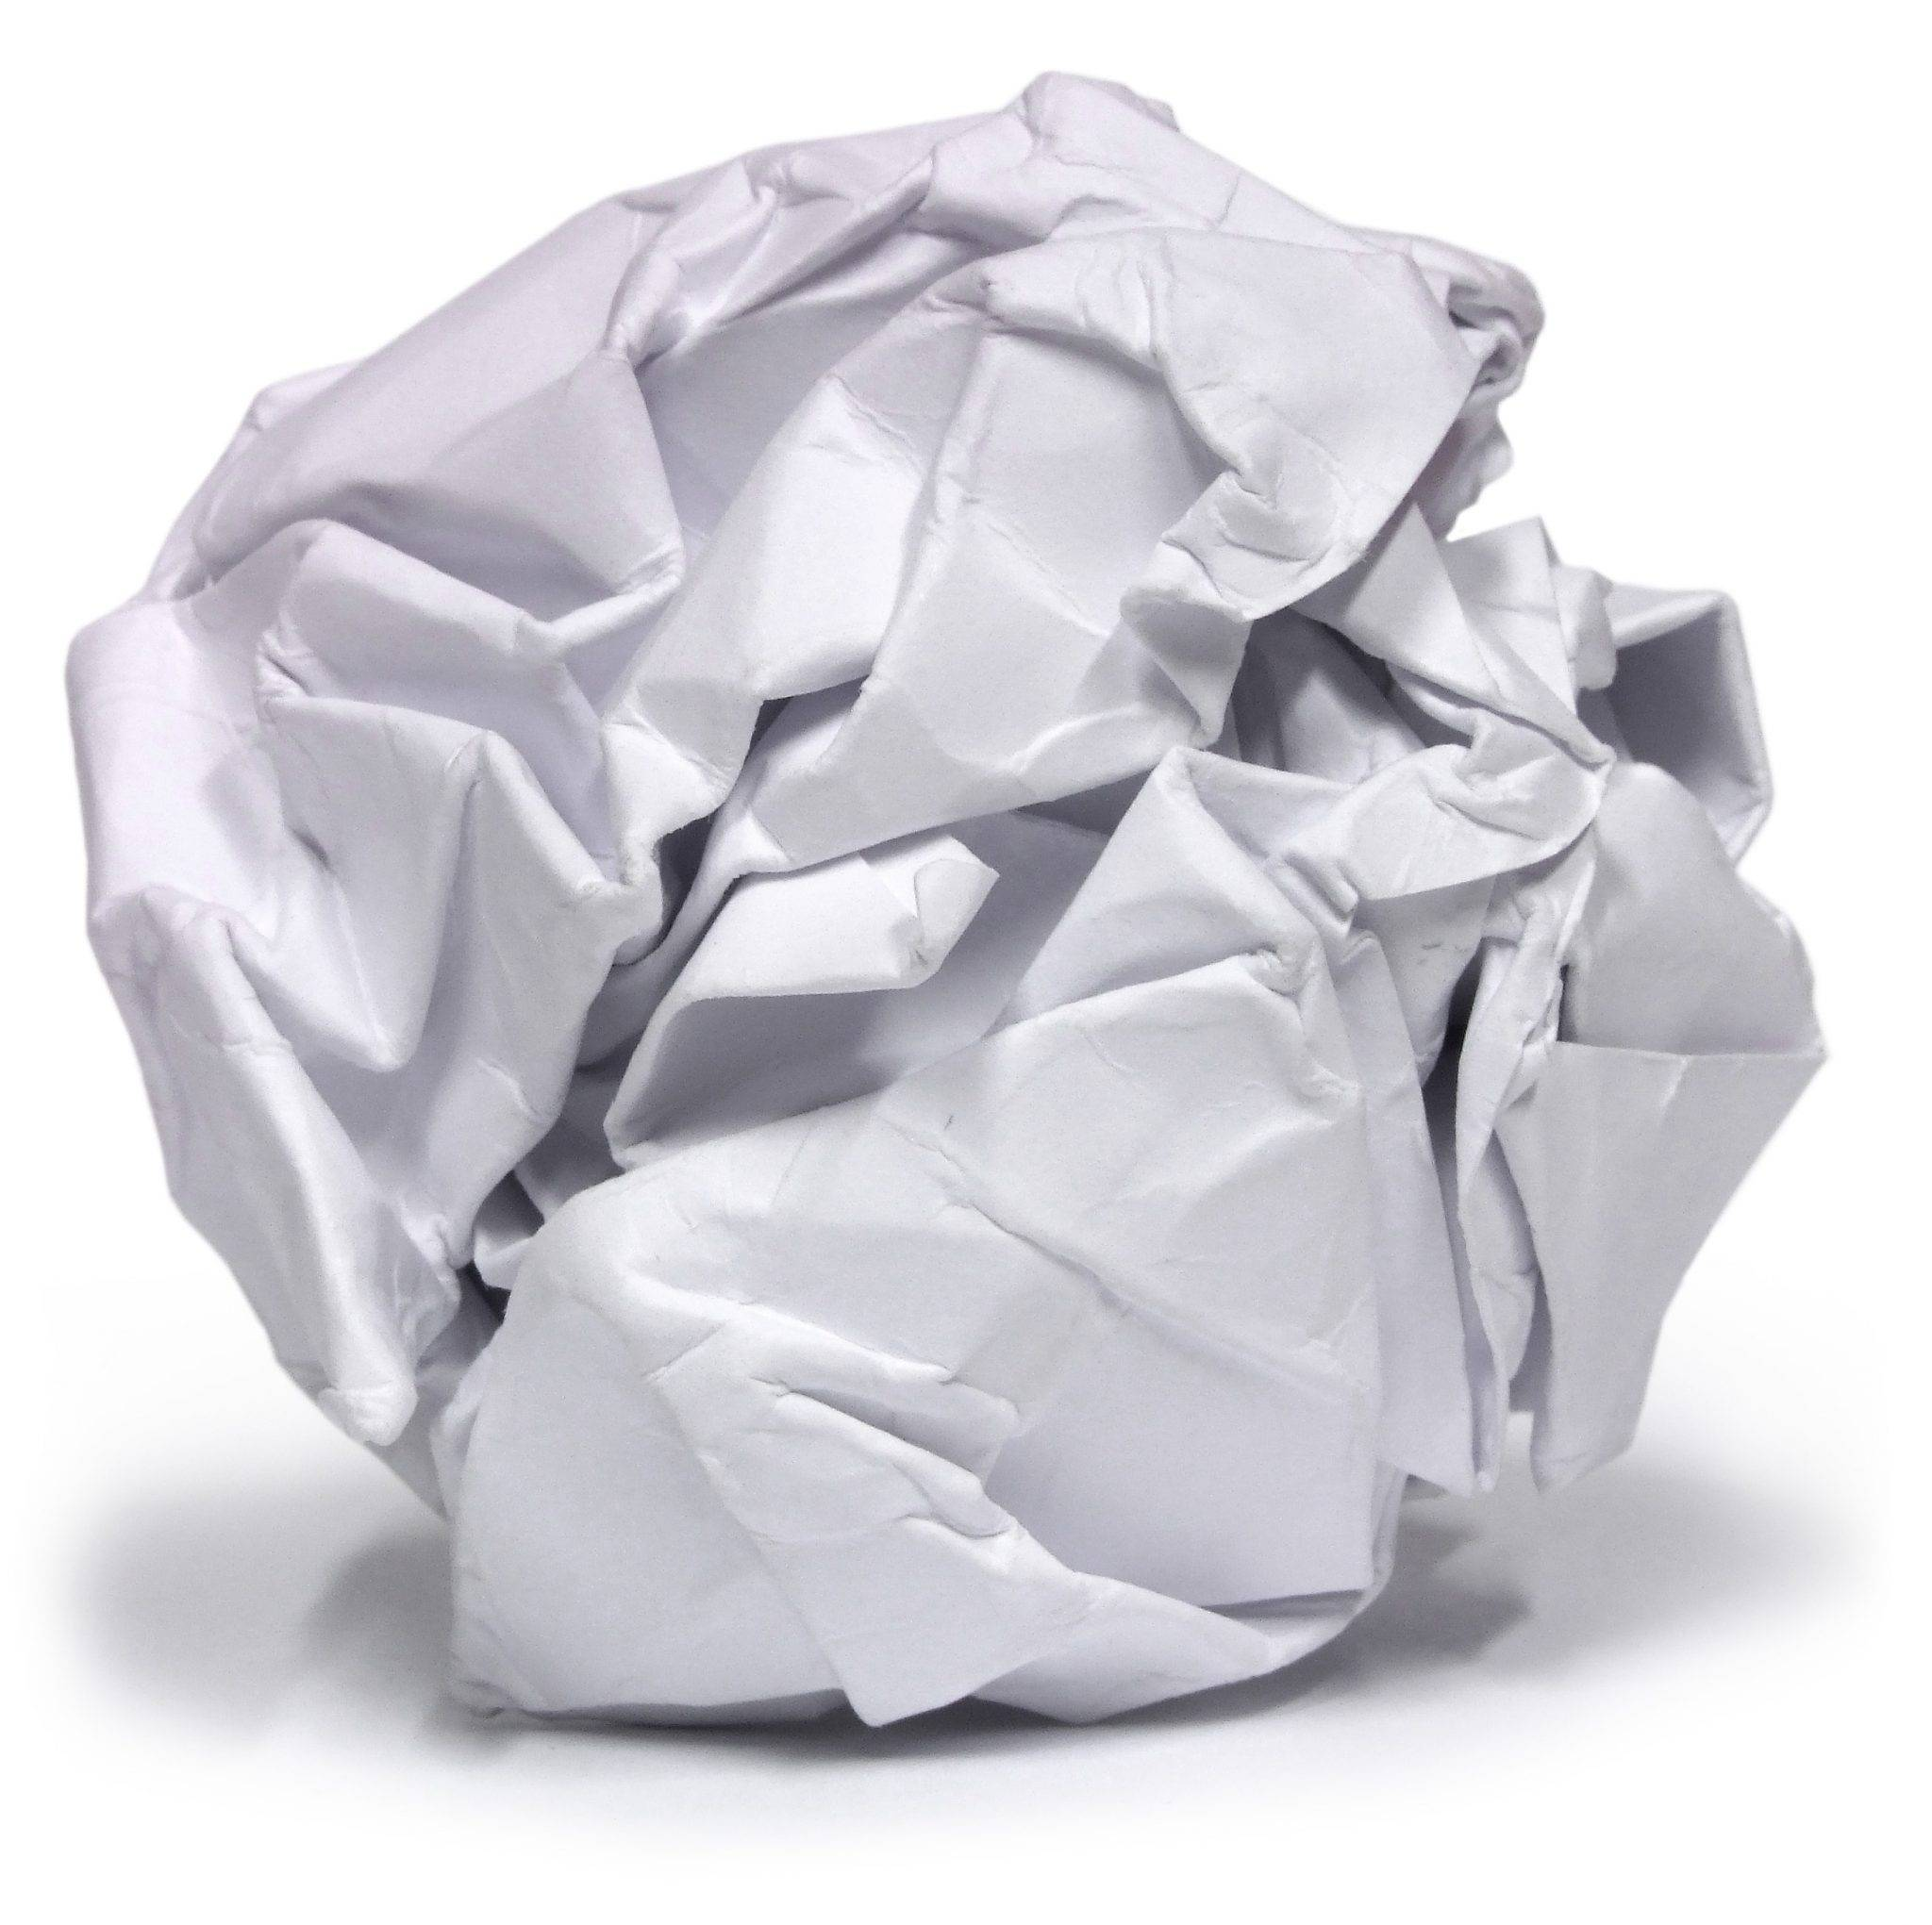 Fewer than ten percent of business processes will rely on paper by 2018